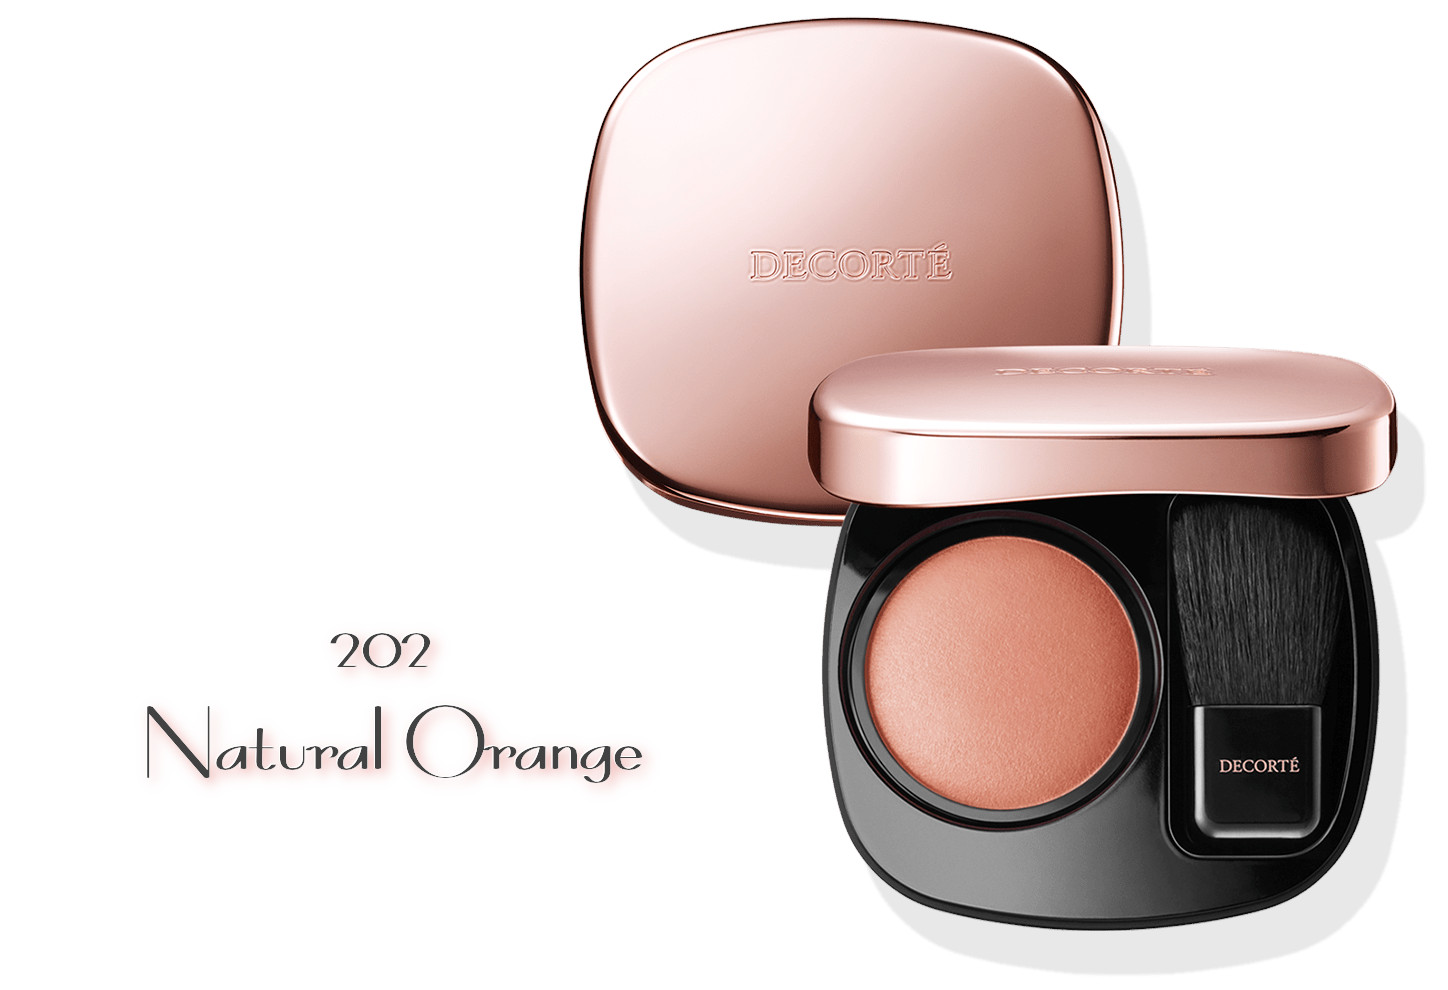 DECORTE 2021 Spring Collection Sway Light Powder Blush 202 Natural Orange